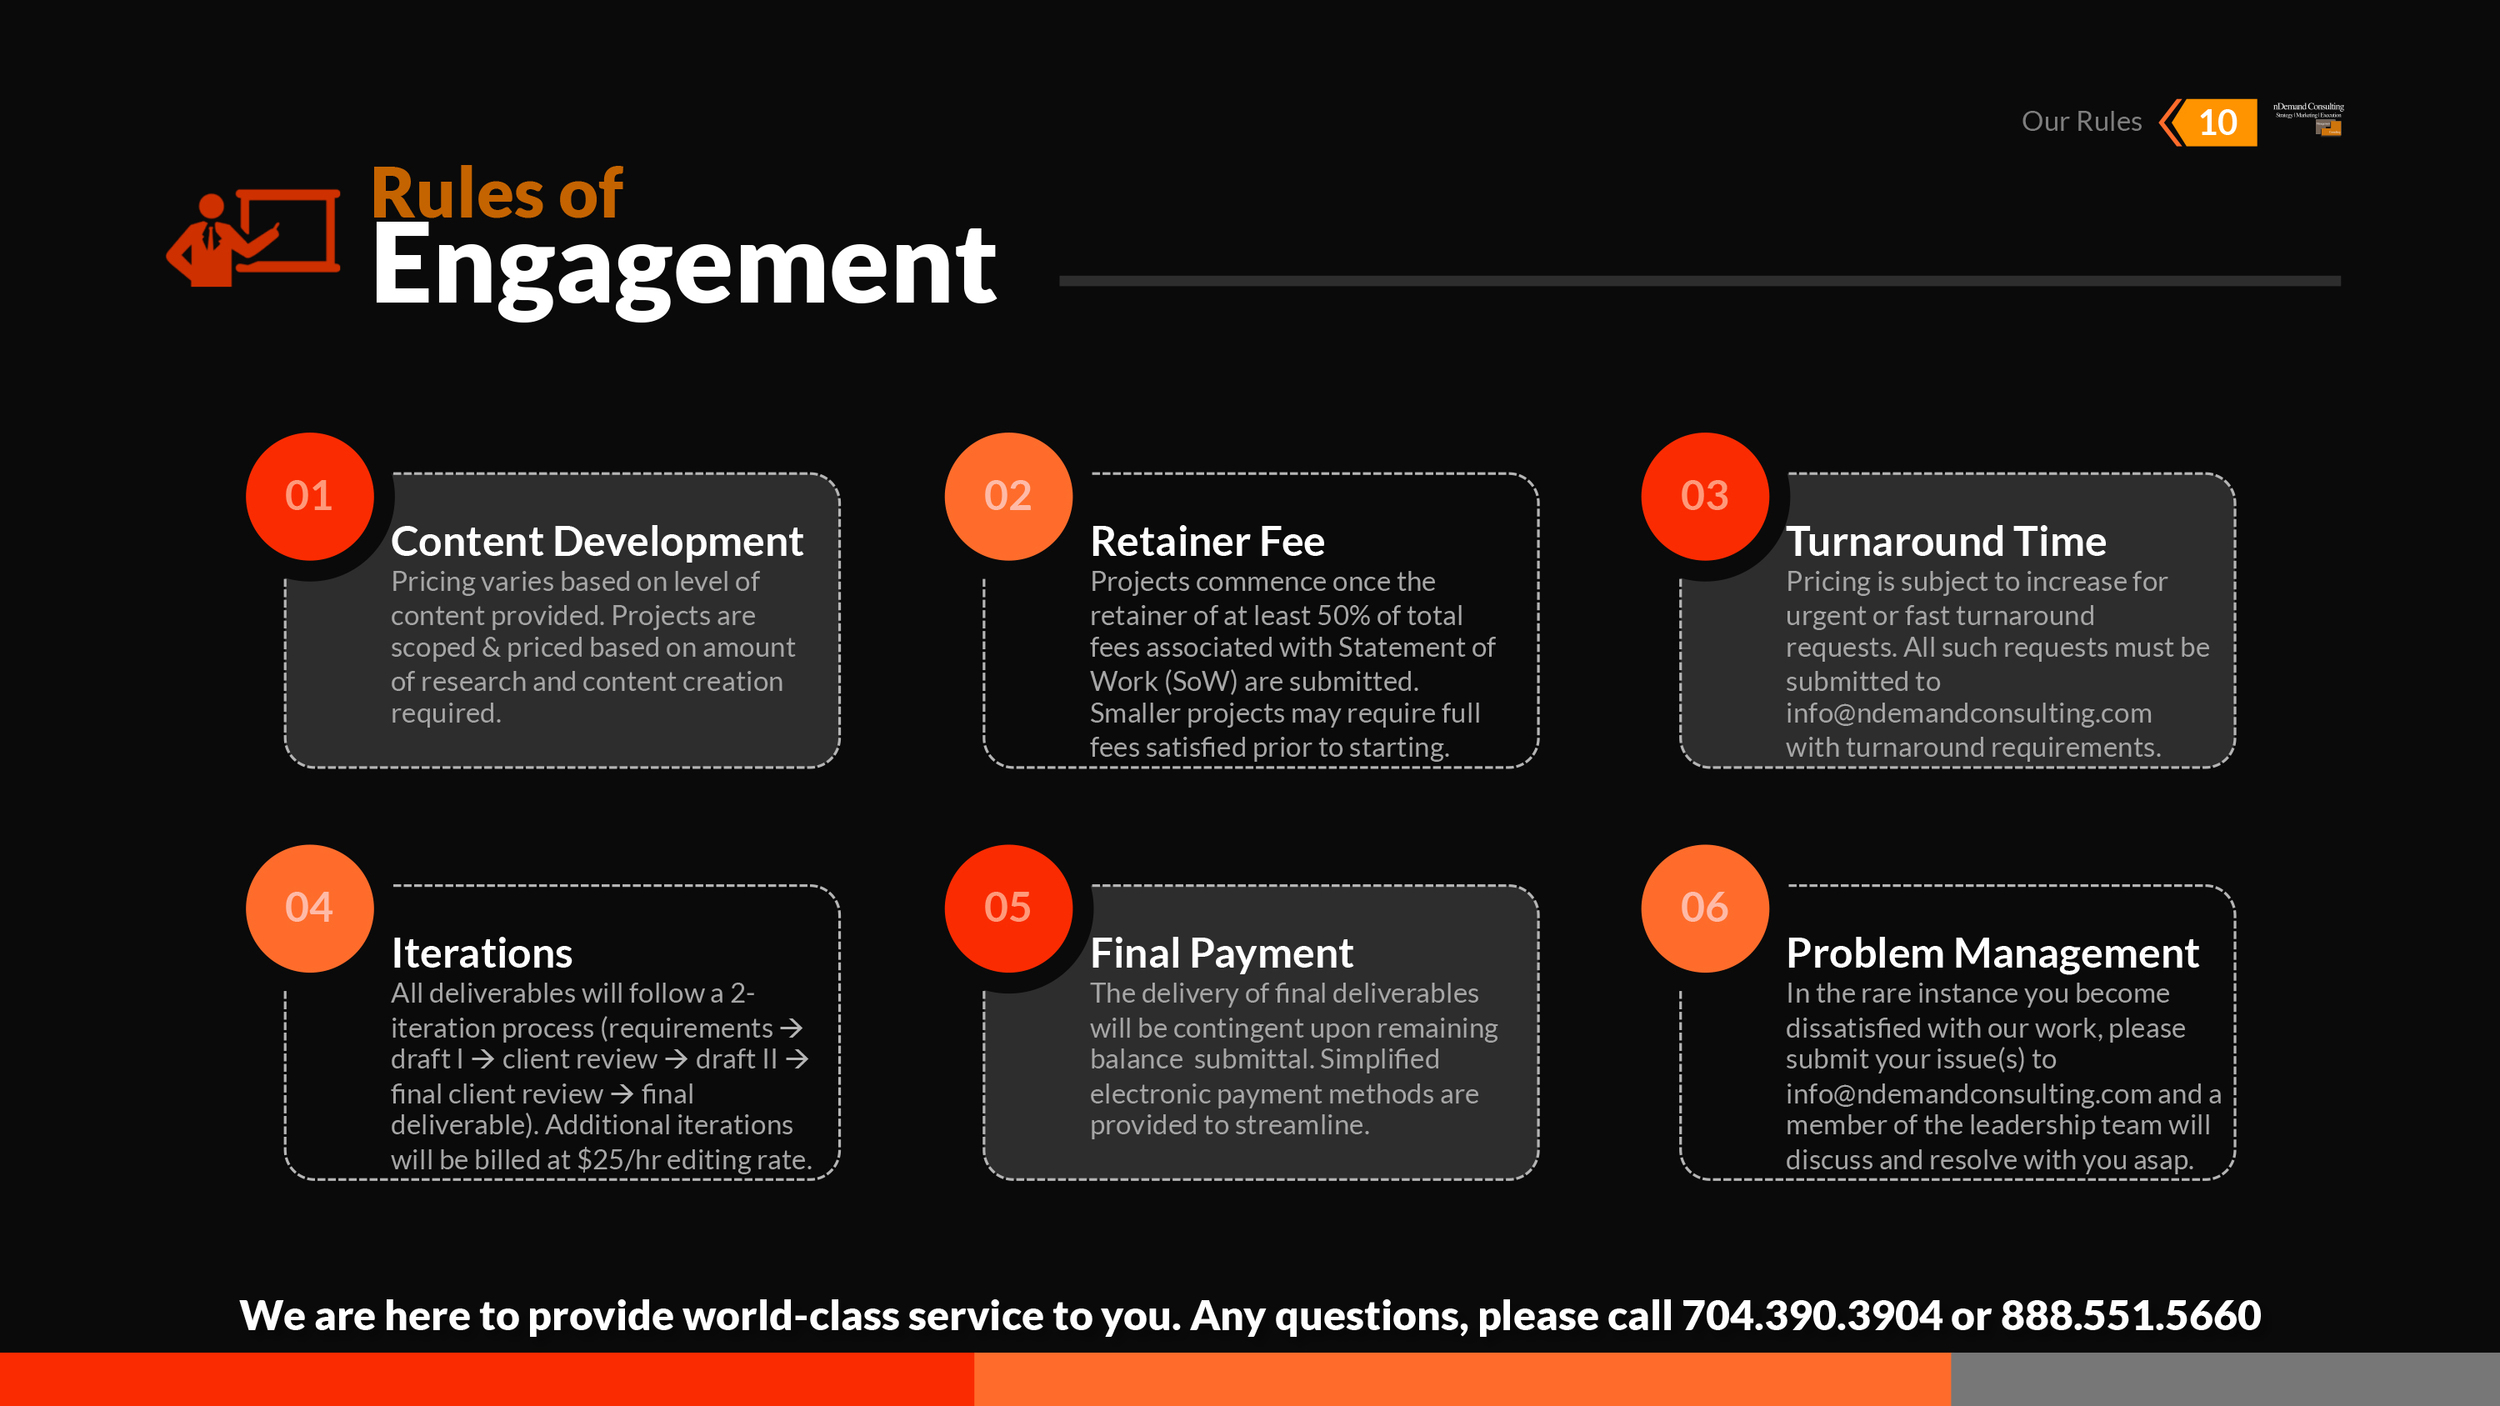 nDemand-Consulting_Rules-of-Engagement-11.jpg